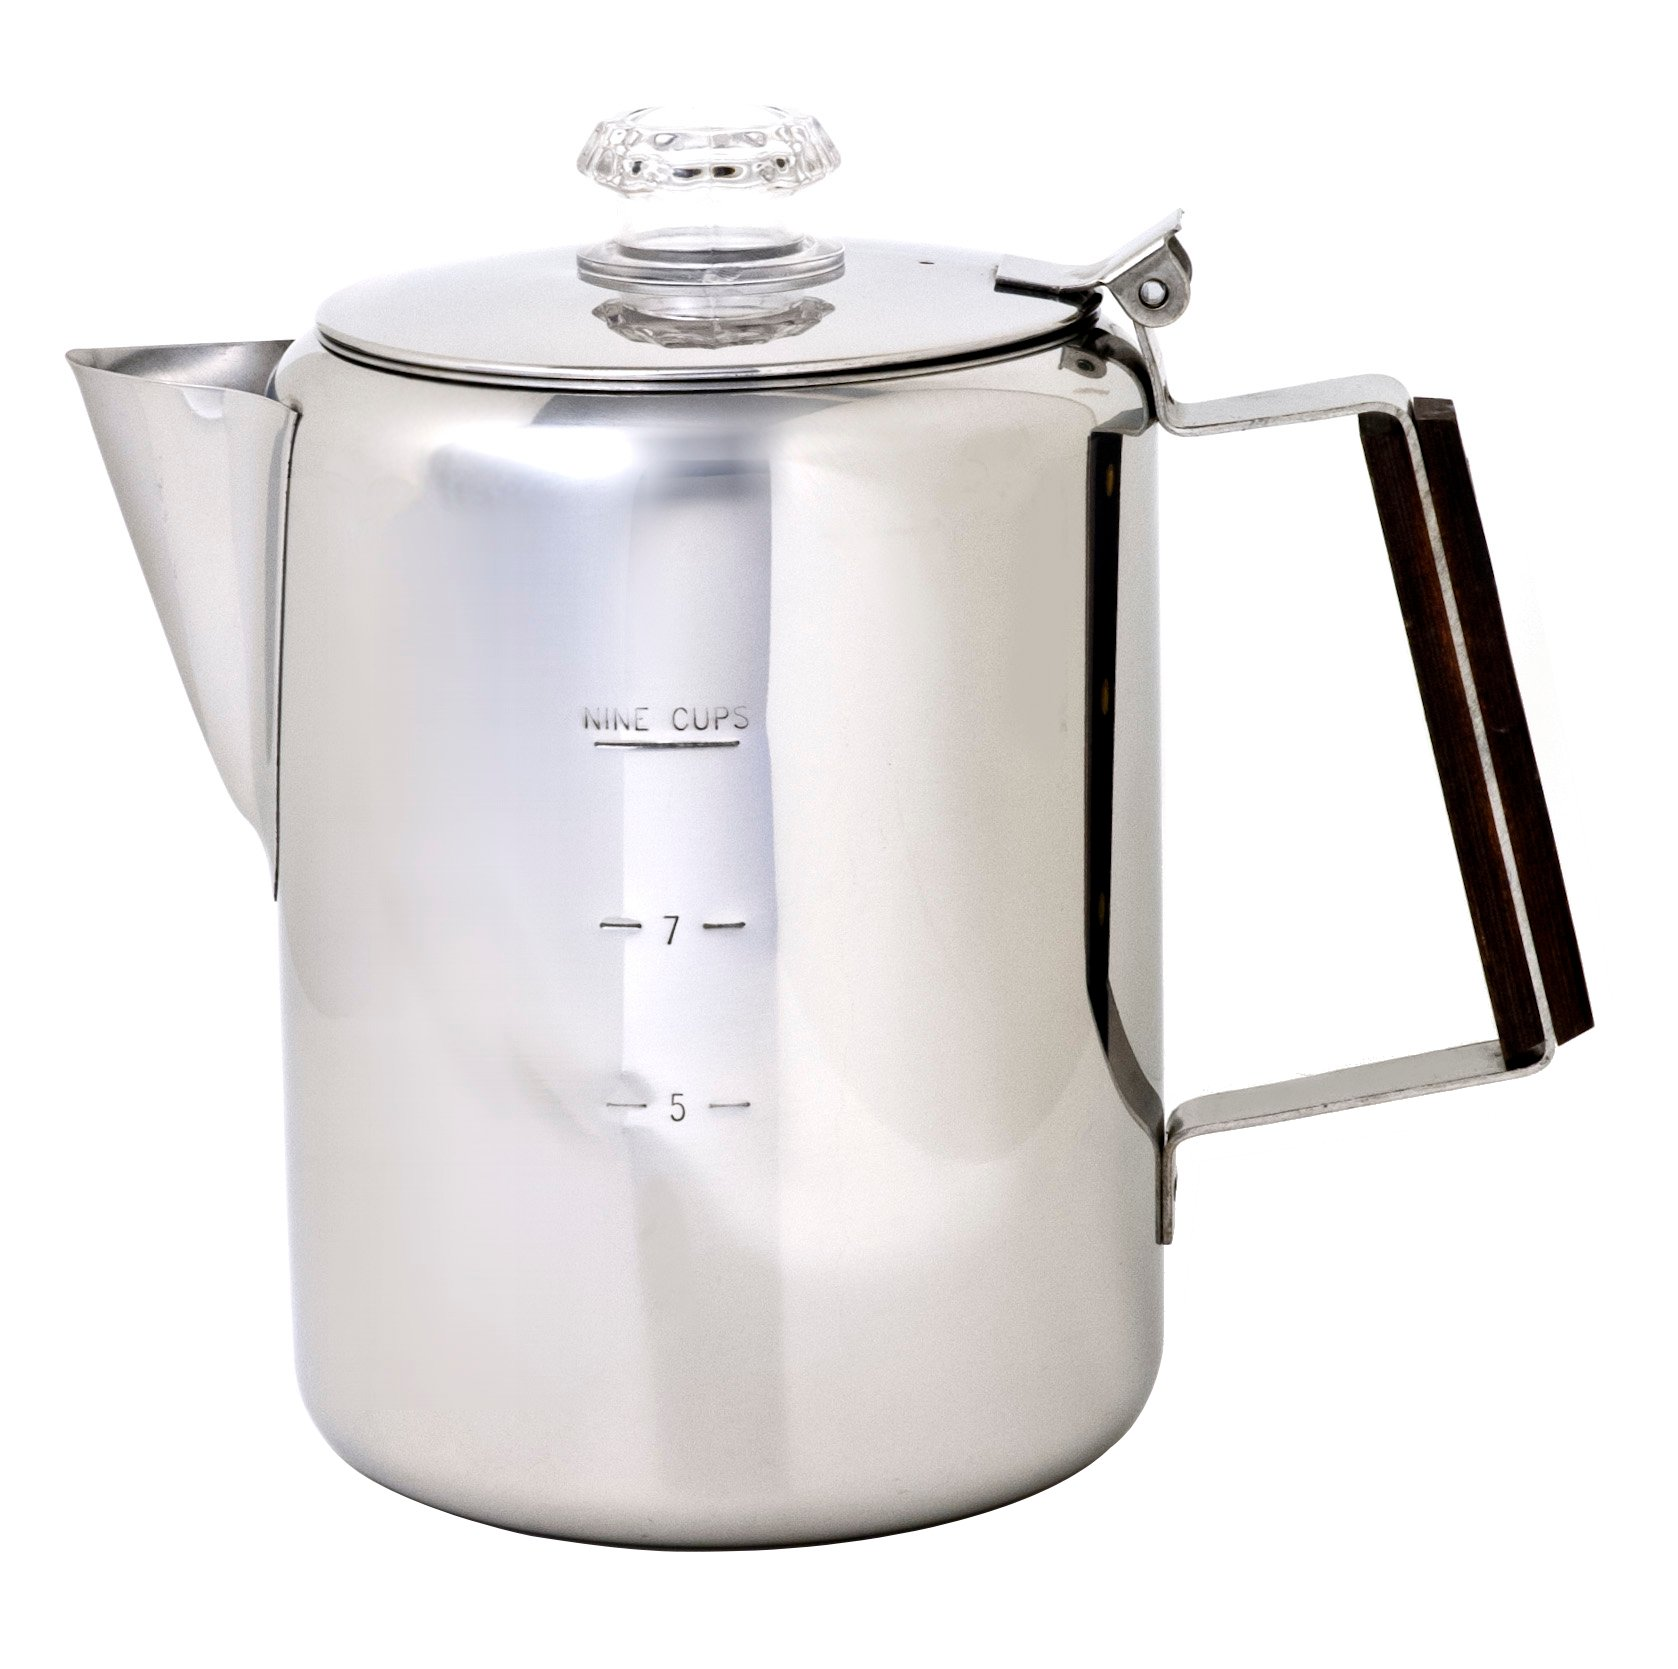 Chinook Timberline 9 Cup Stainless Steel Coffee Percolator by Chinook